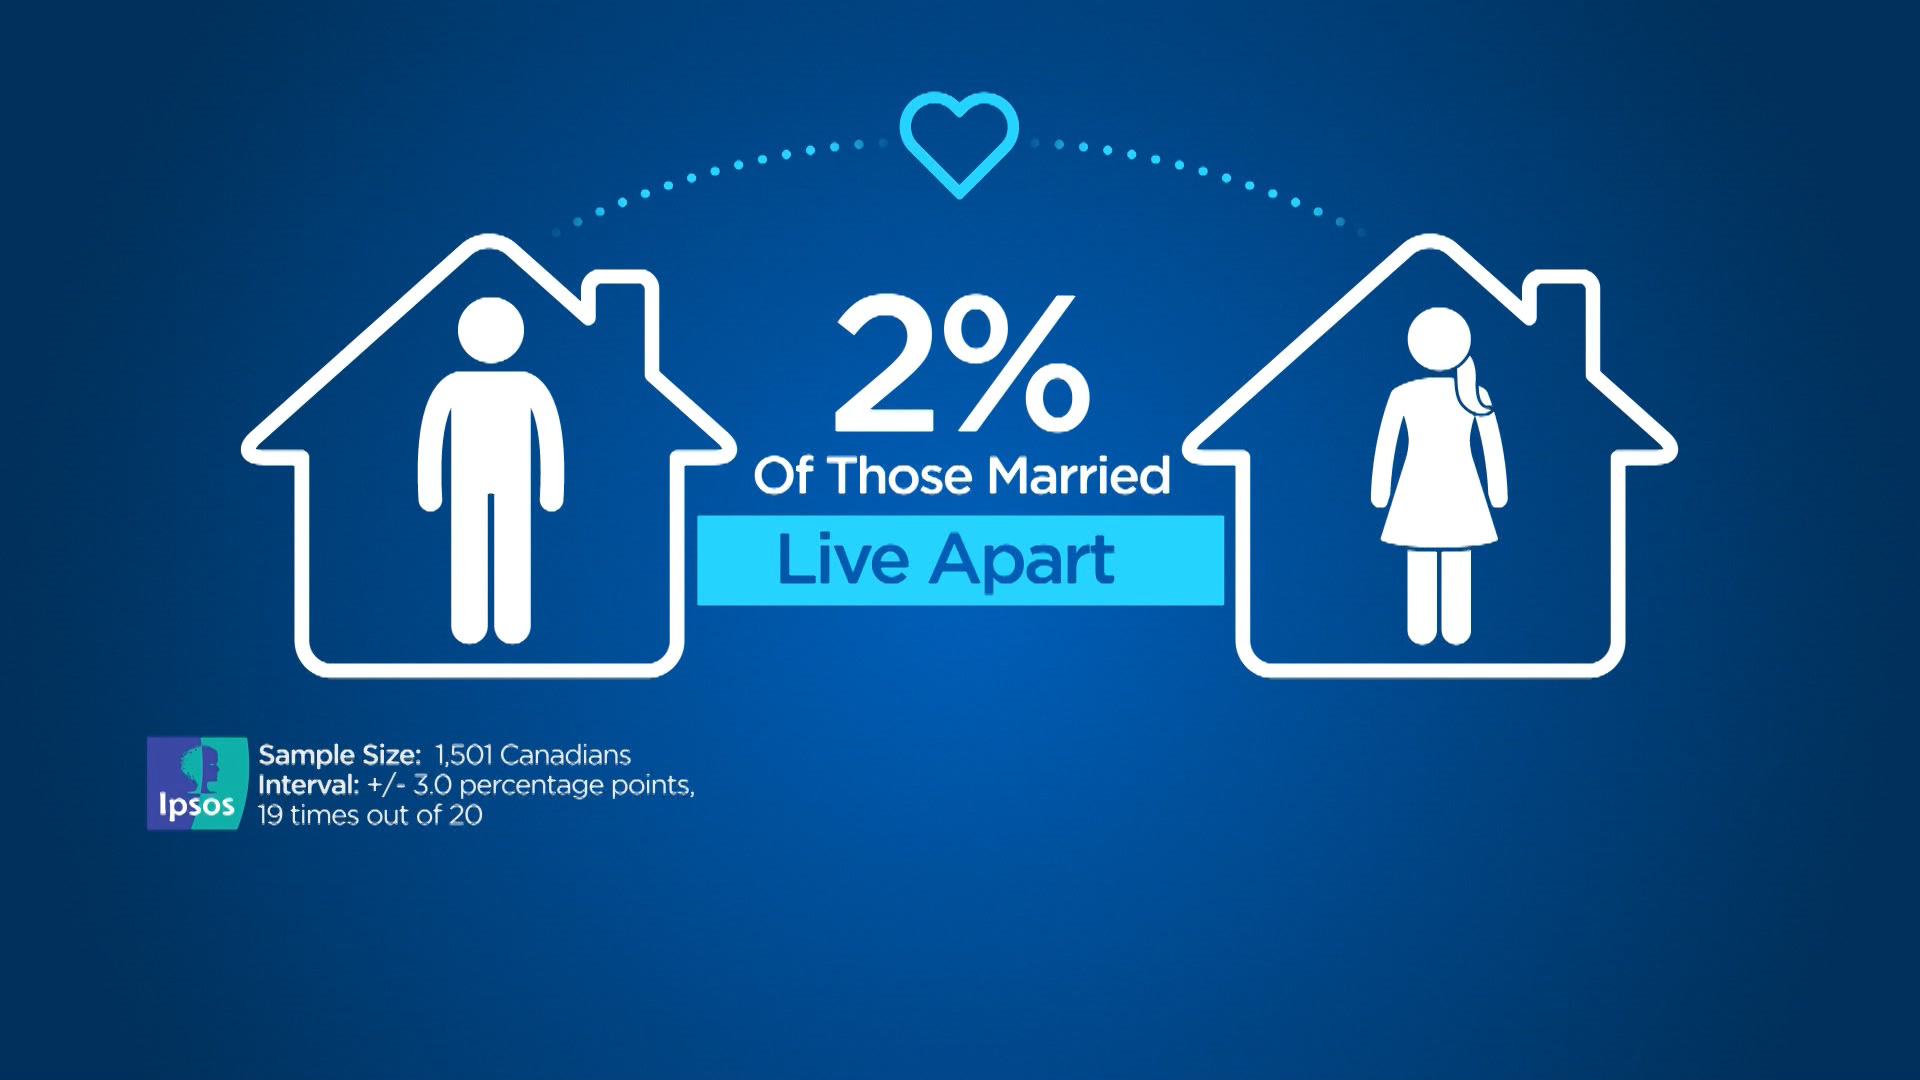 Couples living apart benefits